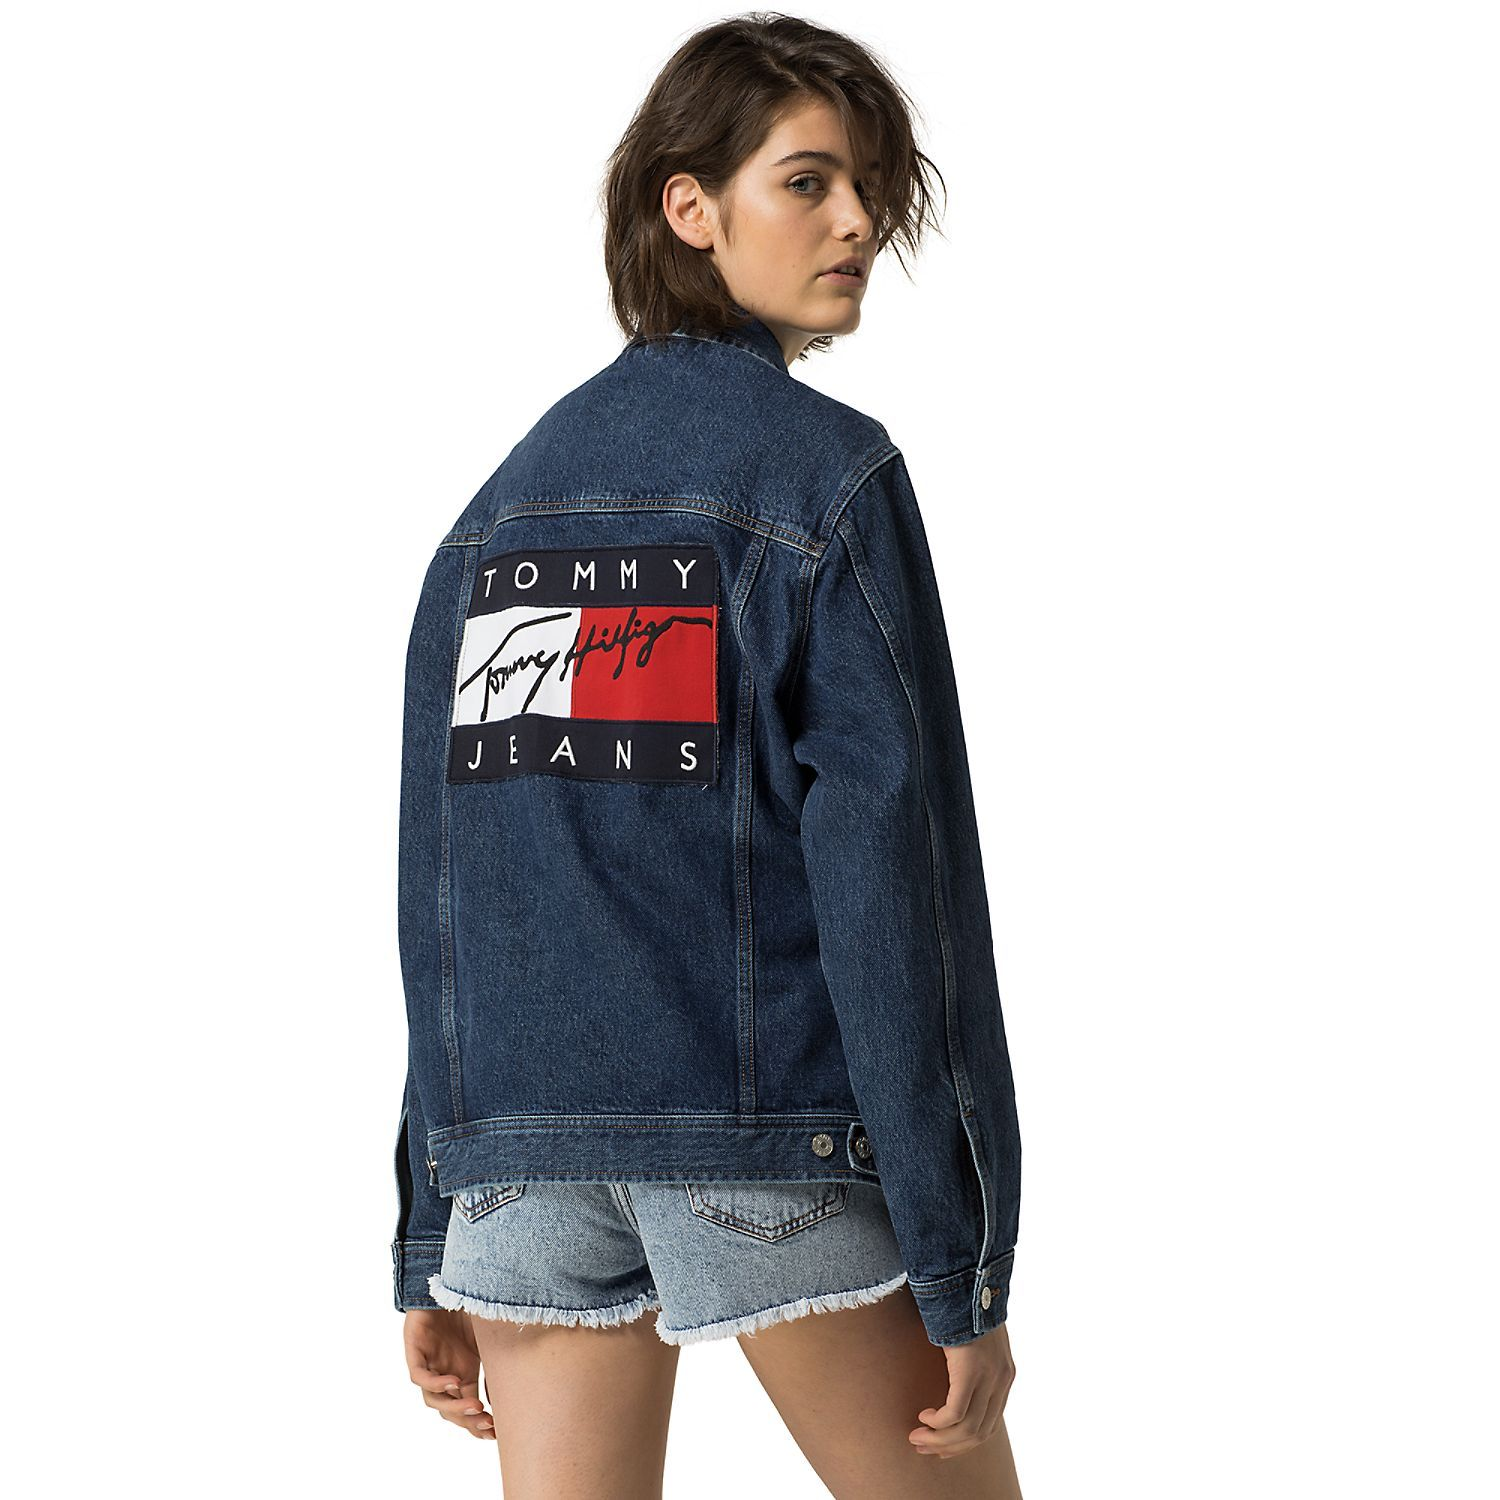 54a6d4af Make a 90s Statement with Tommy Hilfiger's Tommy Jeans Fashions ...